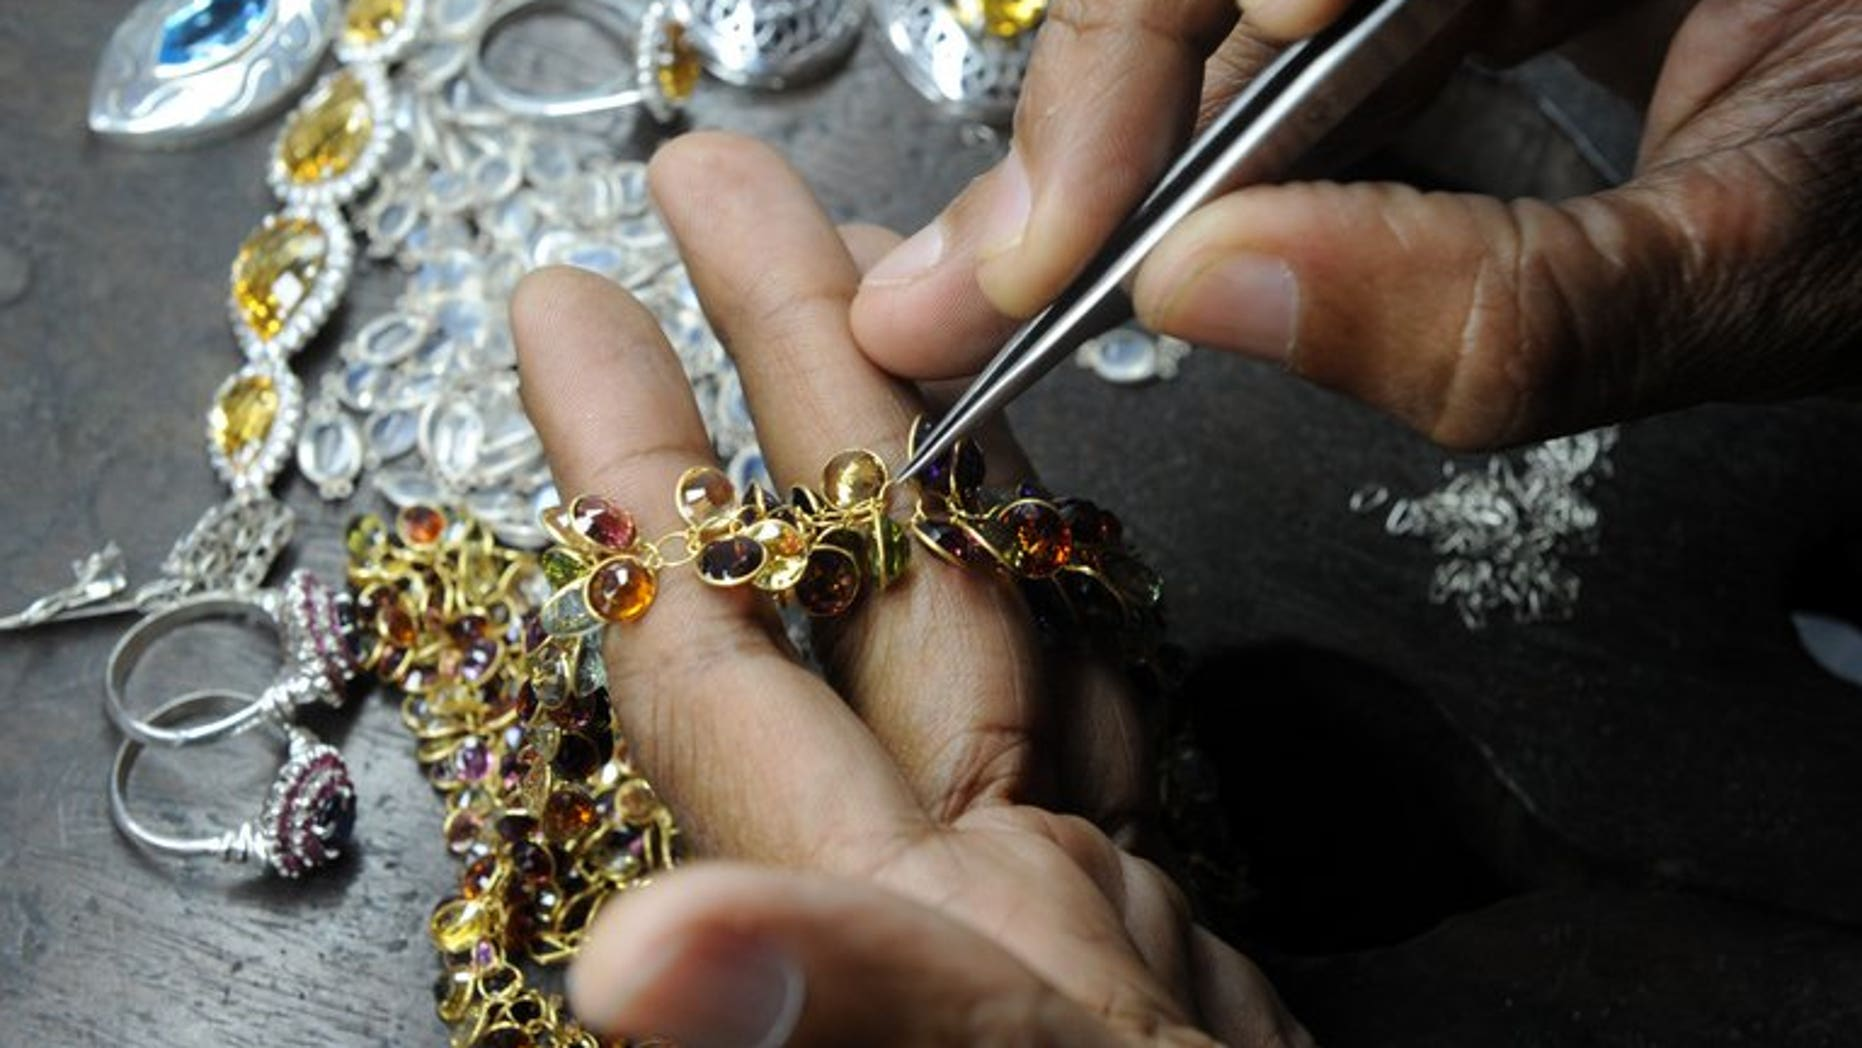 A Sri Lankan worker crafts gold jewellery in the southern city of Galle on January 20, 2011. Sri Lanka announced a 10 percent tax on gold imports Friday in what observers said was a bid to curb smuggling to India as global markets trading in the precious metal reported sharp price drops to 2010 levels.